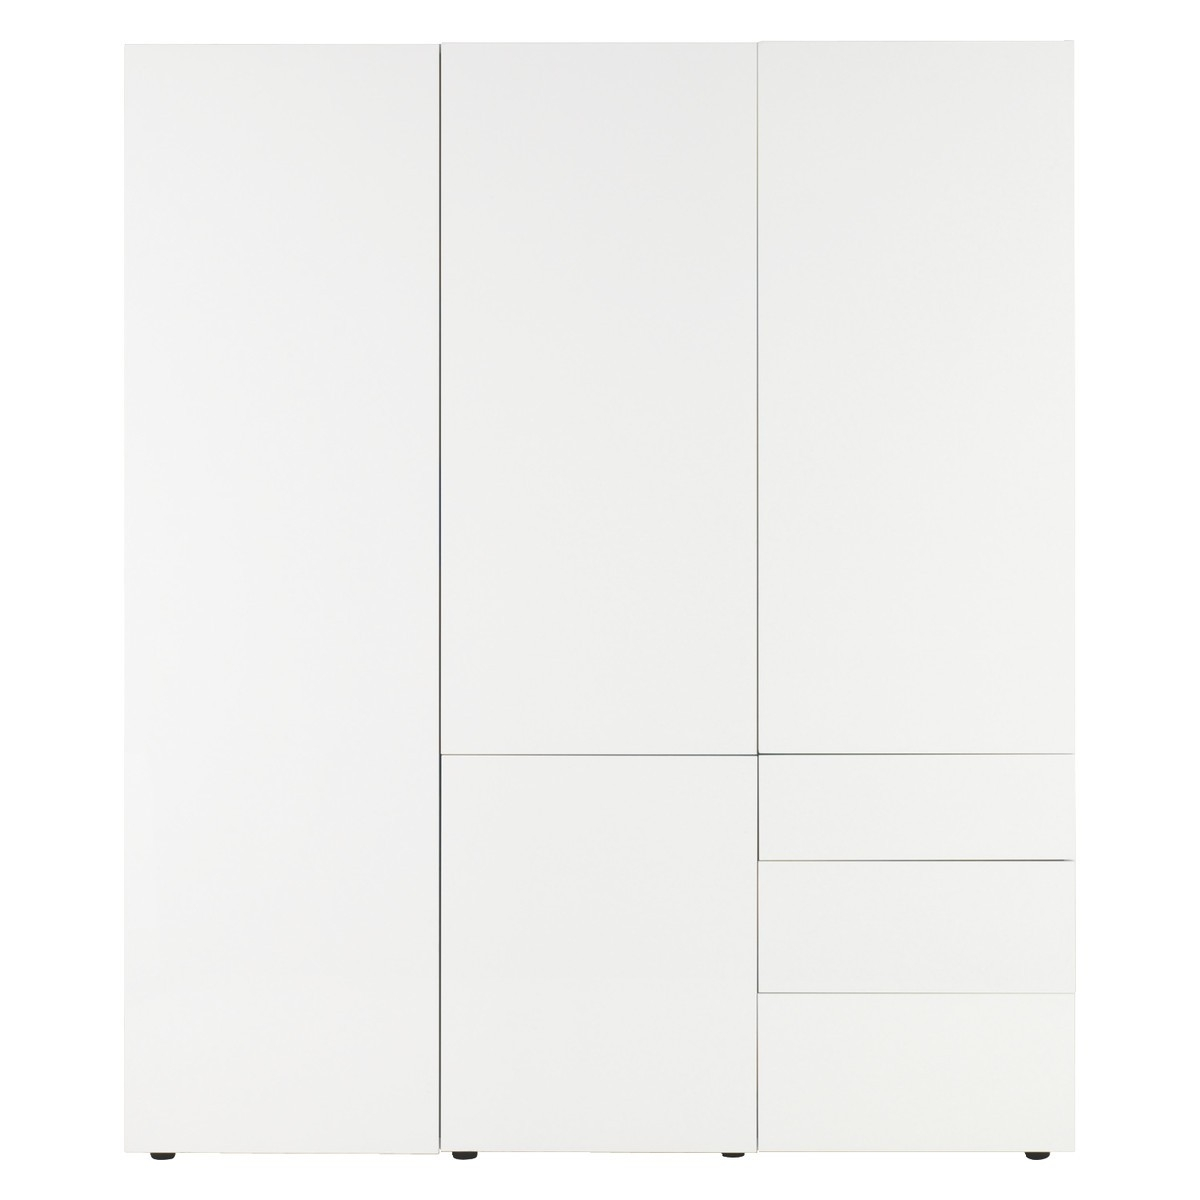 Perouse White 3 Door Wardrobe 180cm Width Buy Now At Habitat Uk Within 3 Door White Wardrobes (Image 15 of 25)